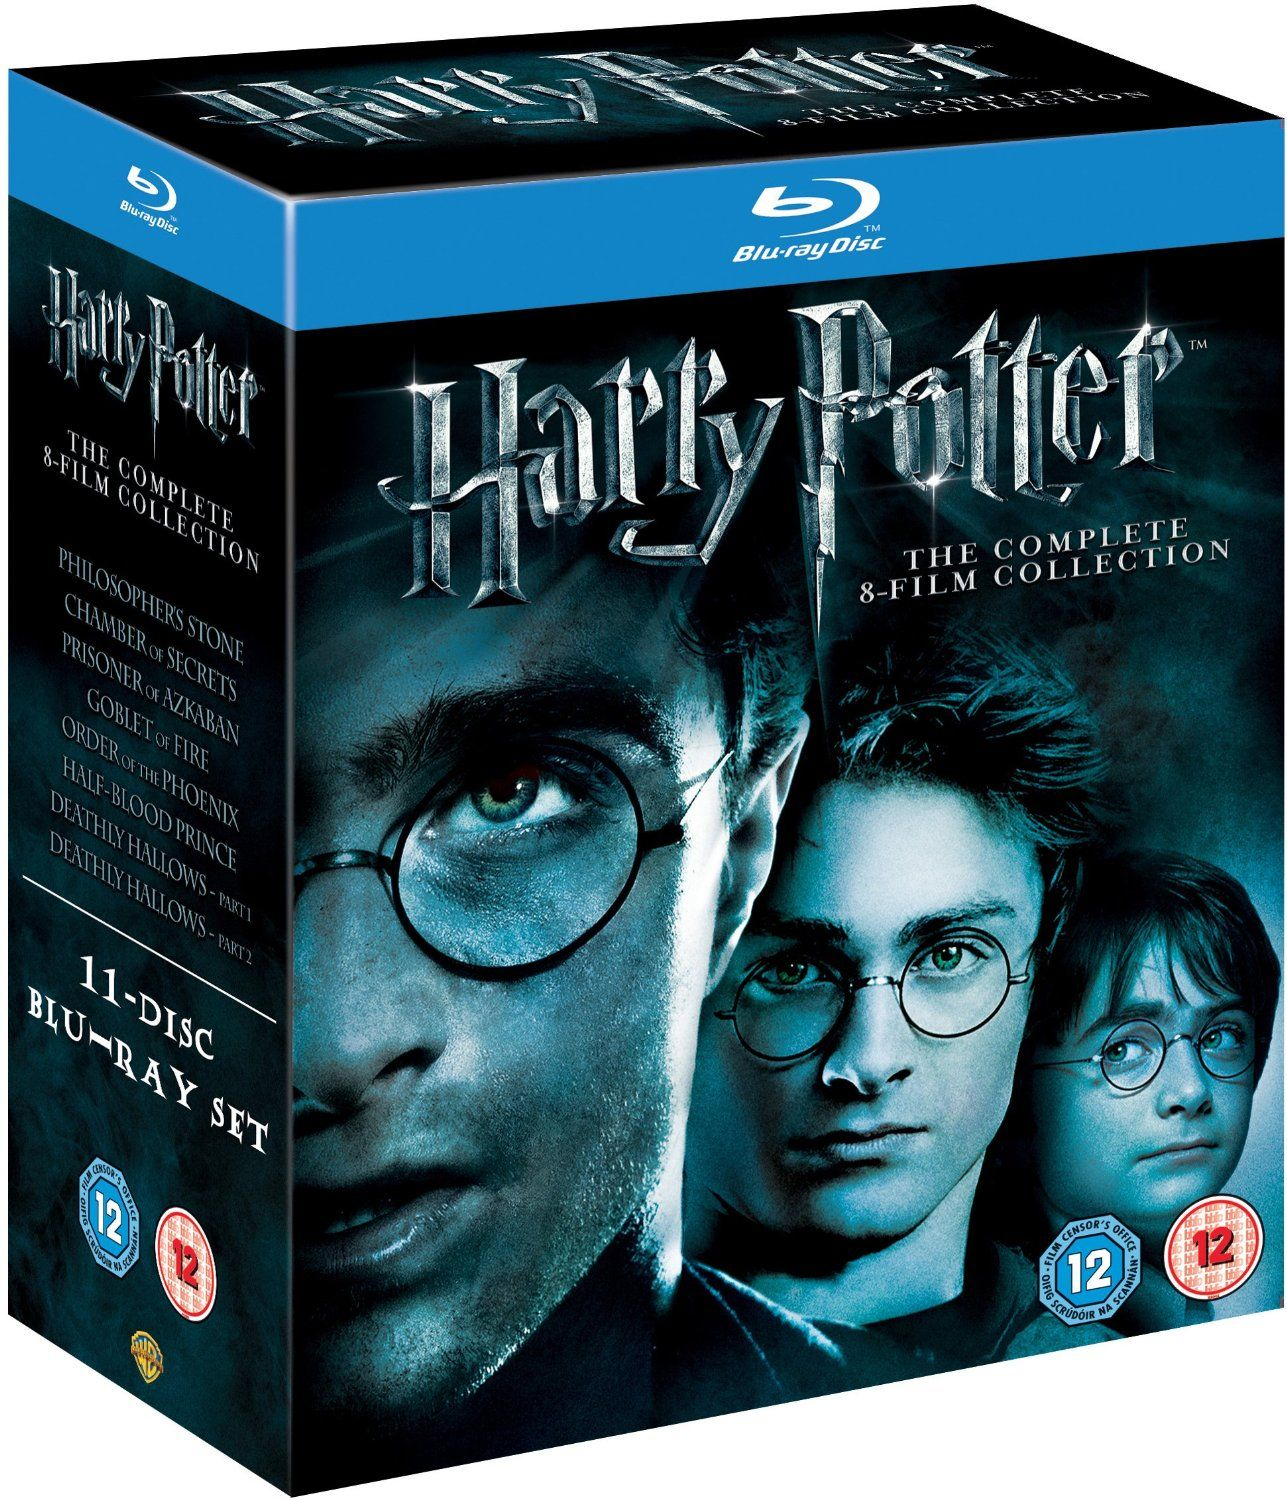 Dvds Harry Potter Harry Potter Movies Harry Potter Film Harry Potter Collection